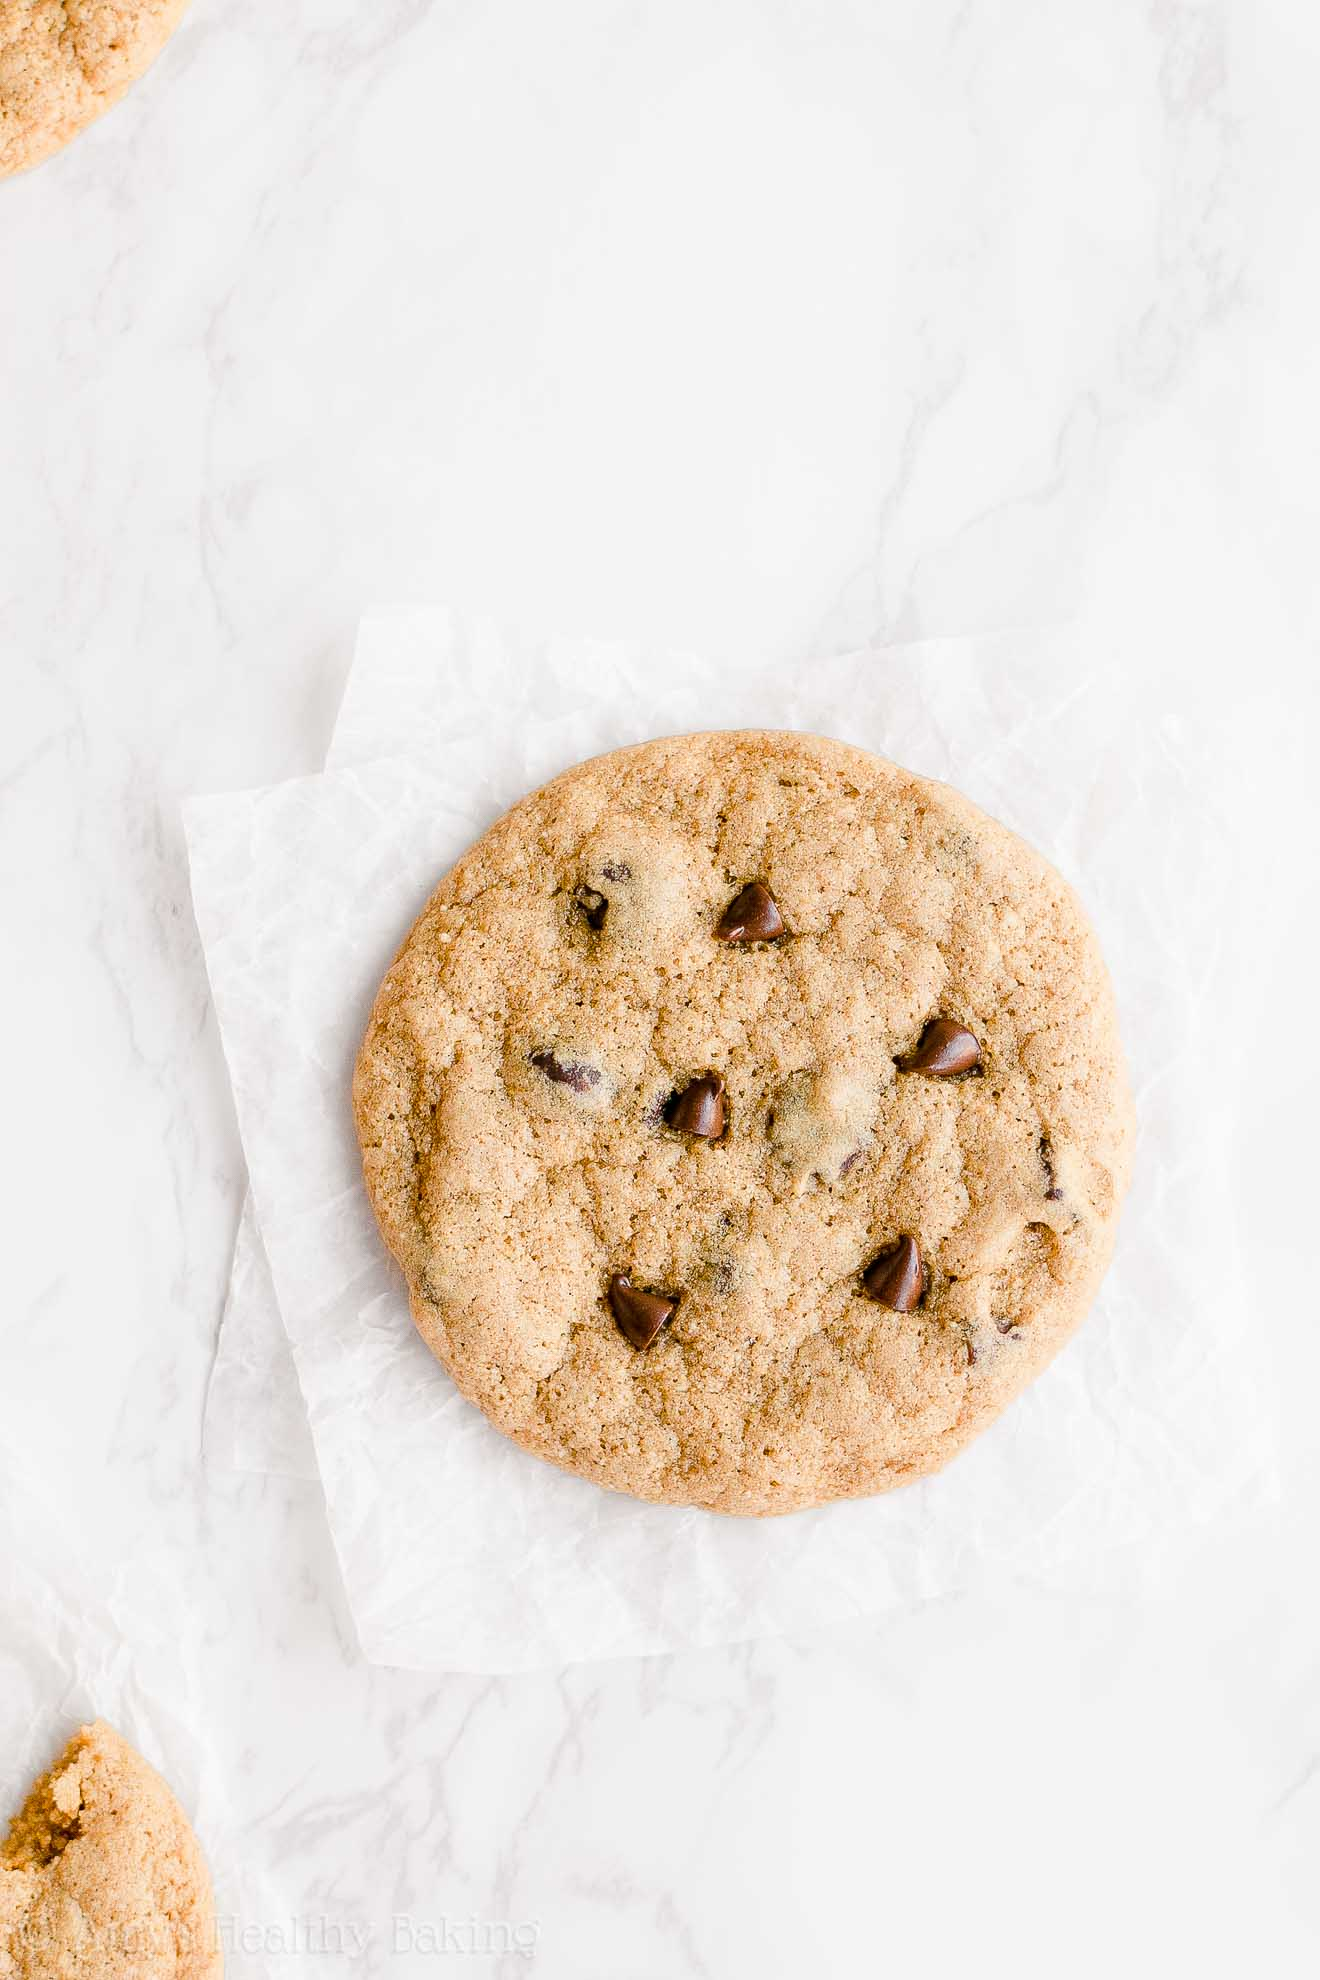 Best Easy Healthy Eggless Whole Wheat One-Bowl Chocolate Chip Cookies